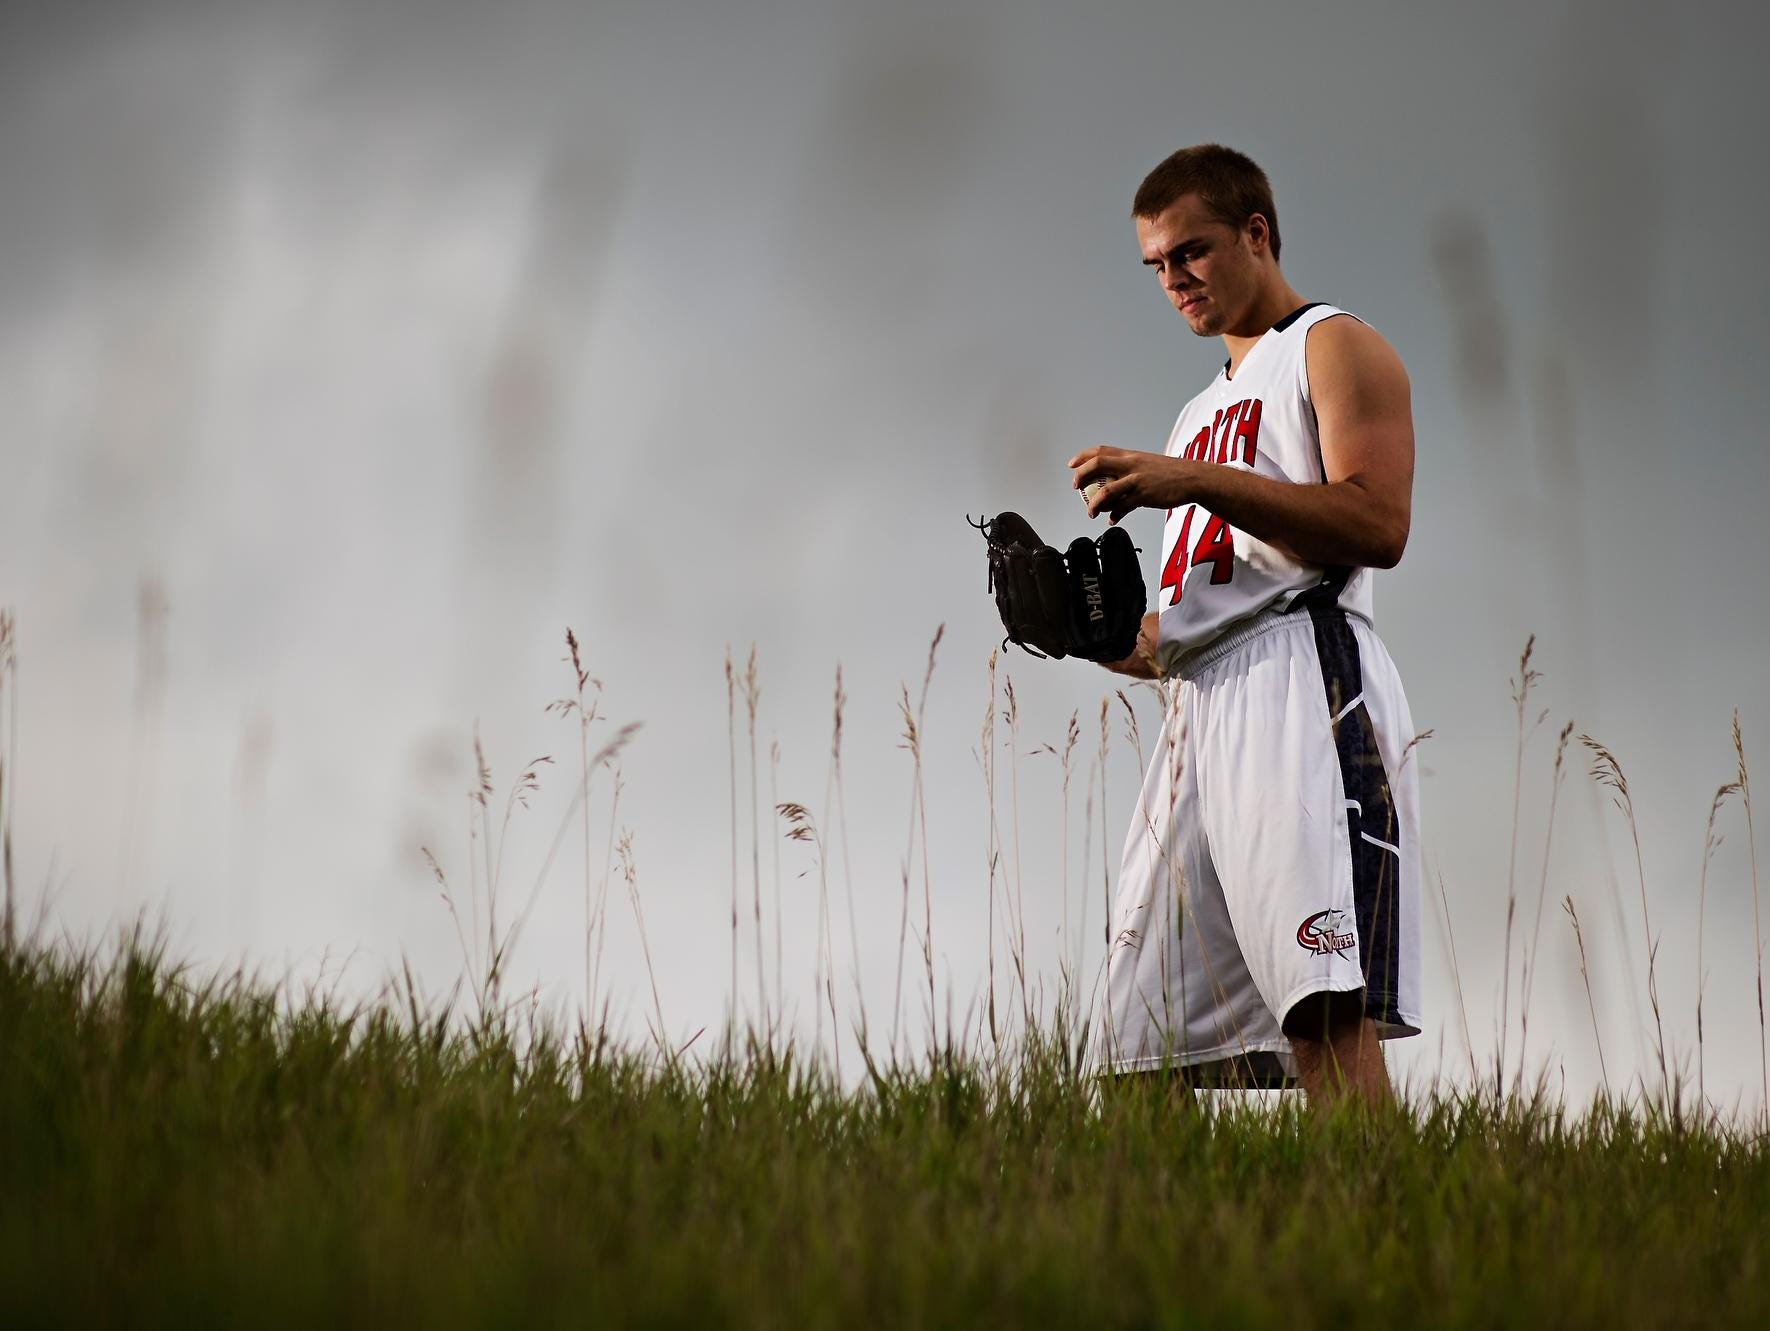 Sioux City North's Daniel Tillo is this year's Register boys' high school athlete of the year.